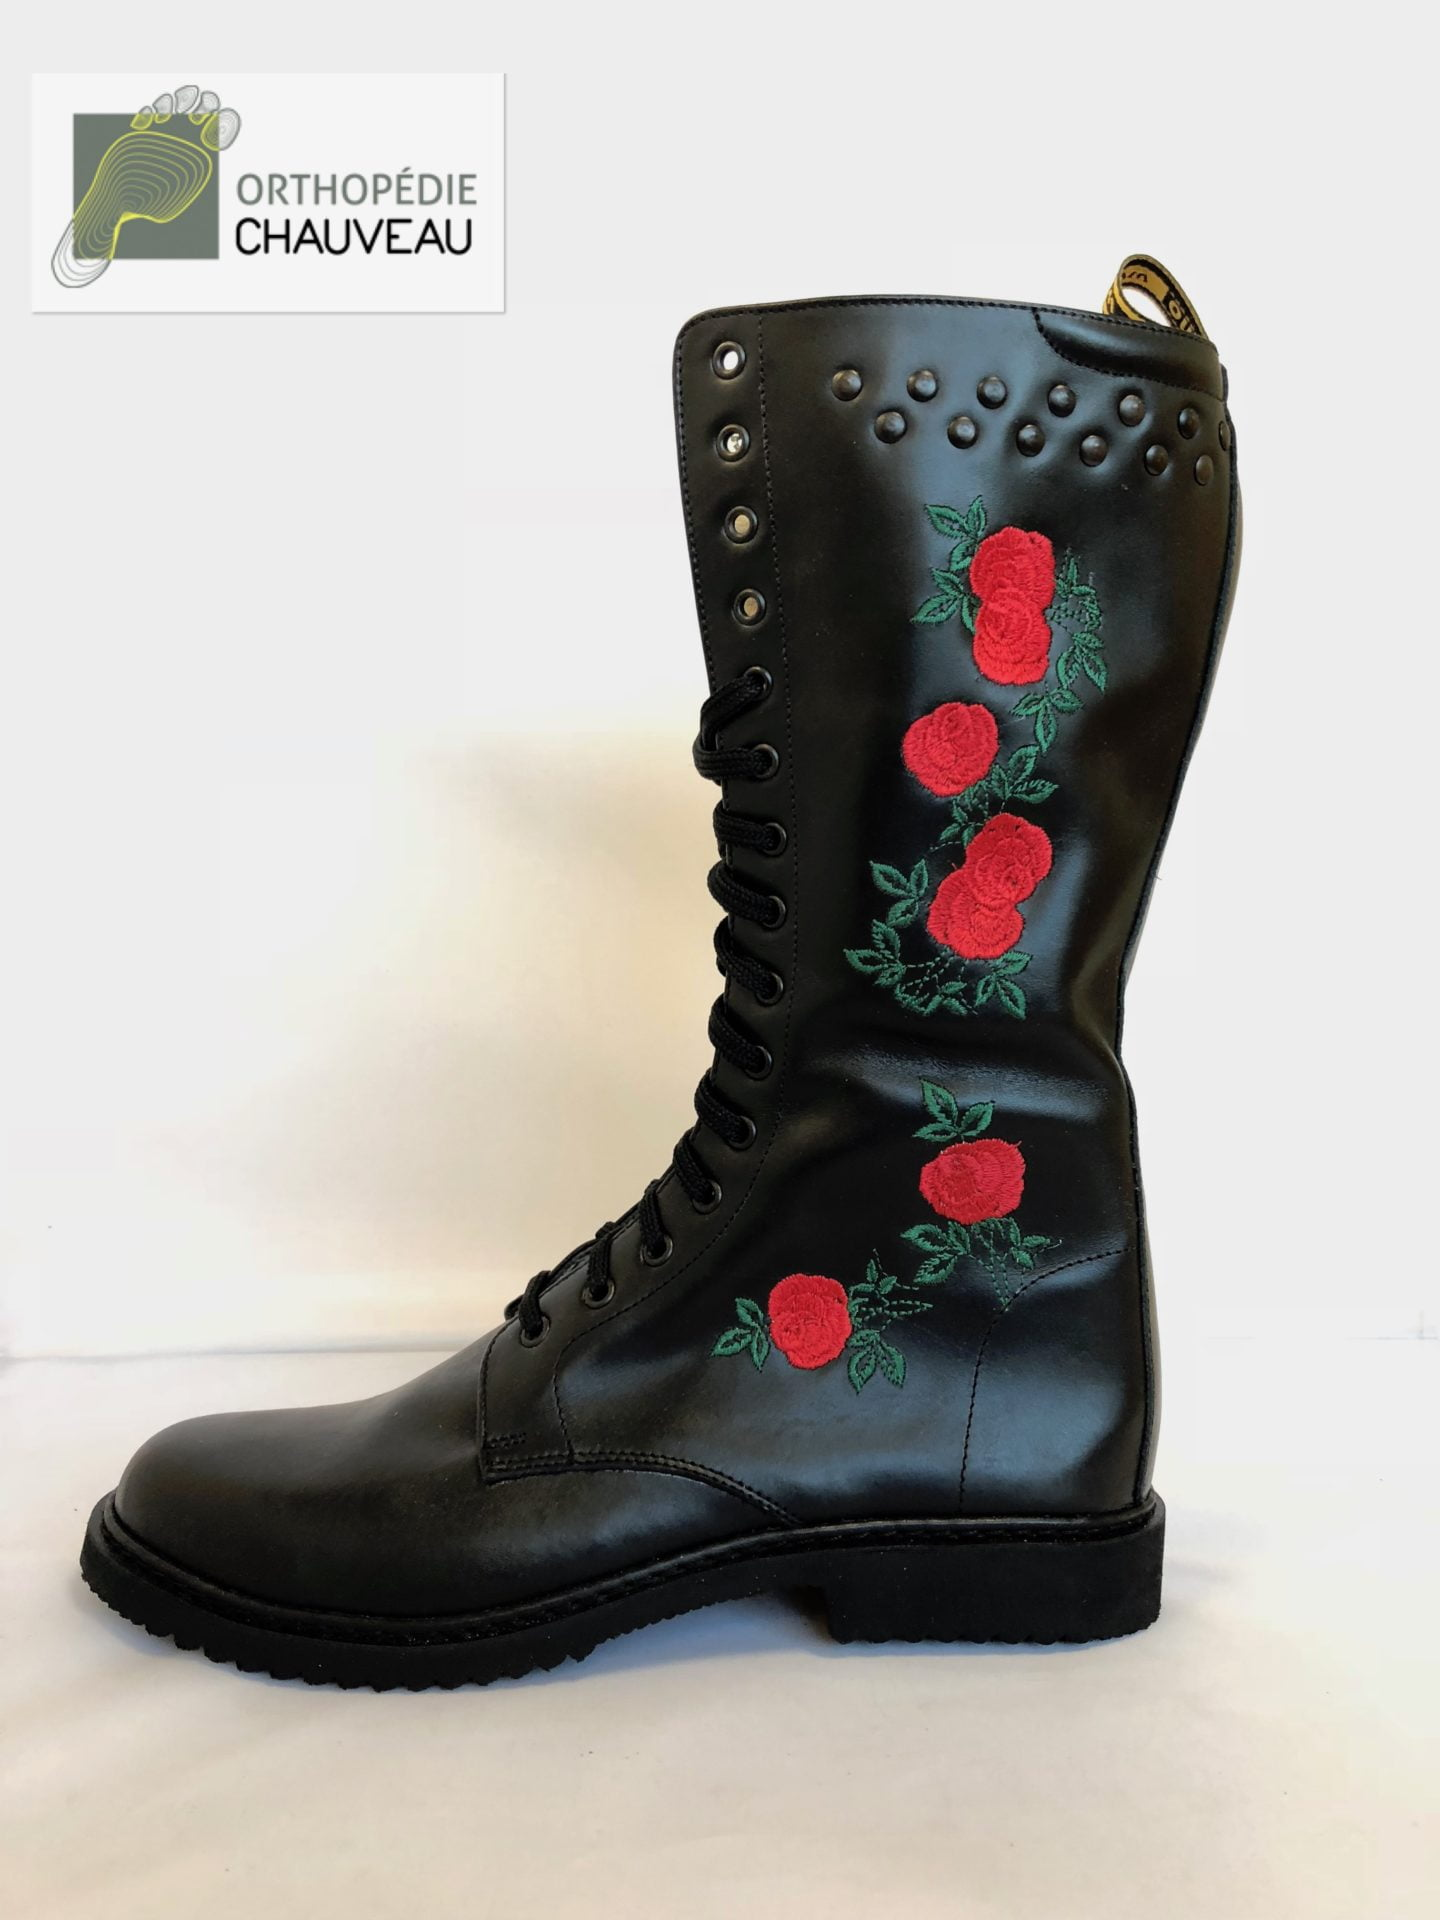 chaussures orthopediques Rennes bottes